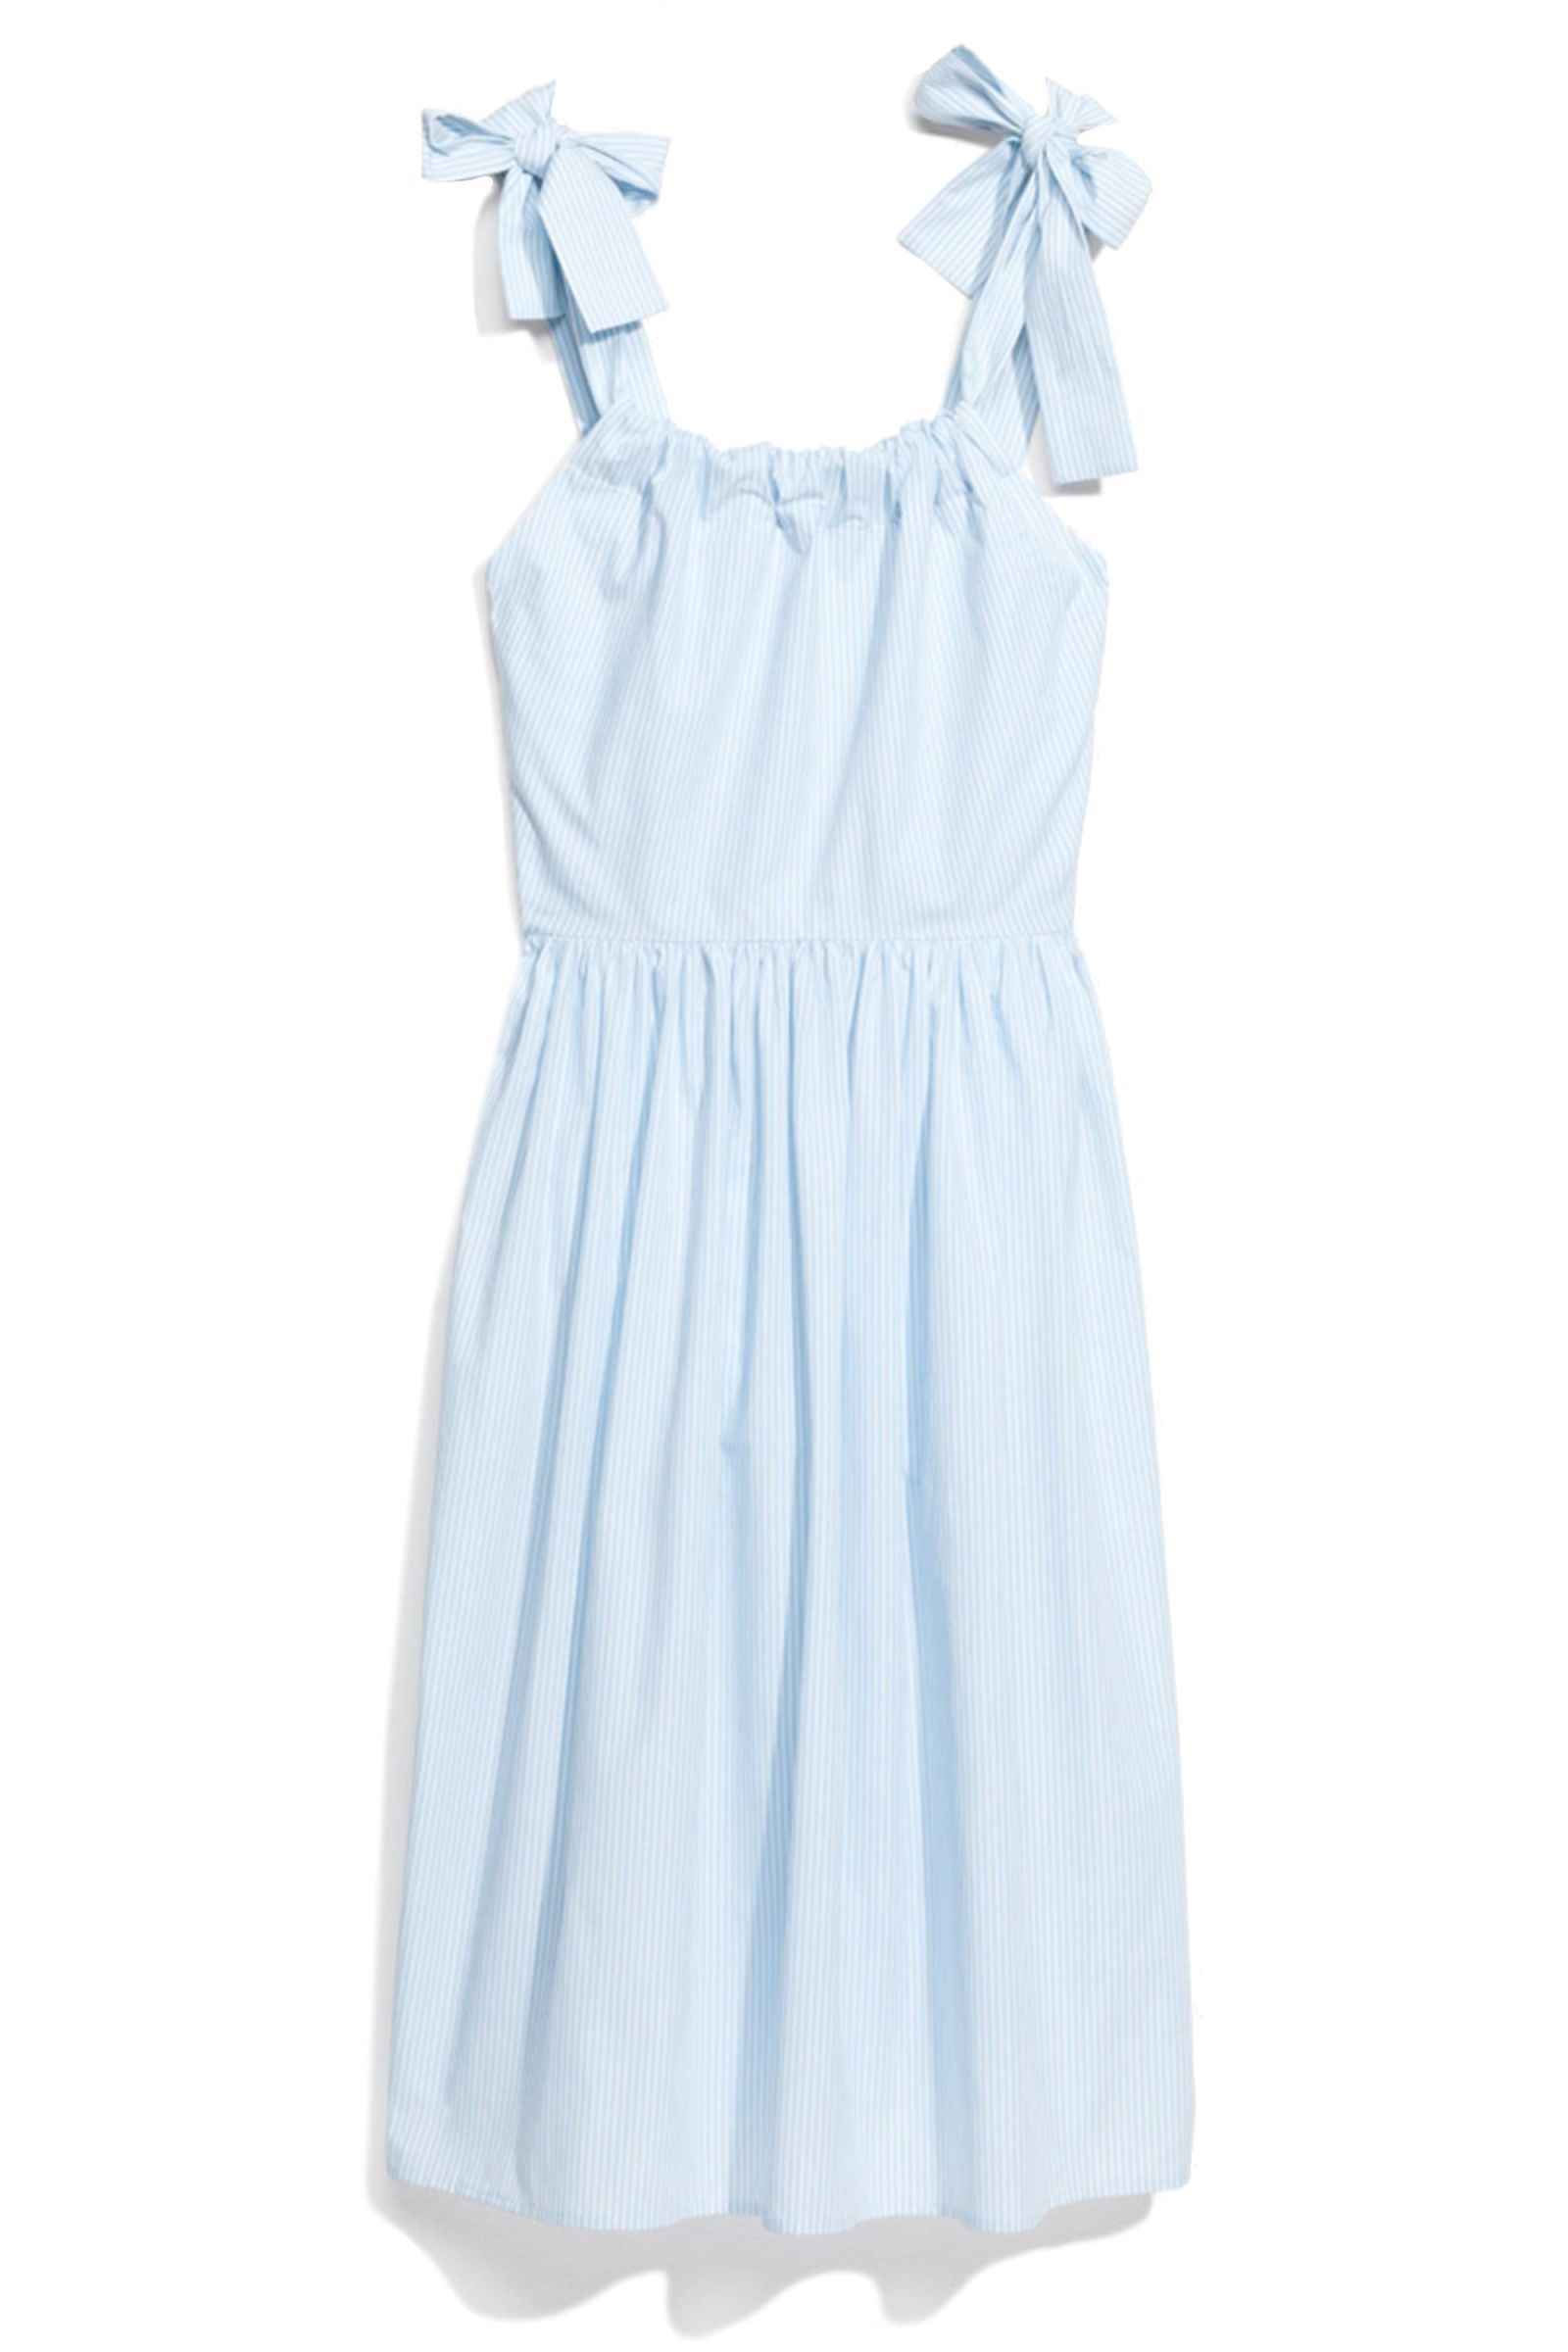 12 Sundresses Under 100 That Will Change Your Summer Sundress Sundresses Women Sundress Outfit [ 2400 x 1600 Pixel ]